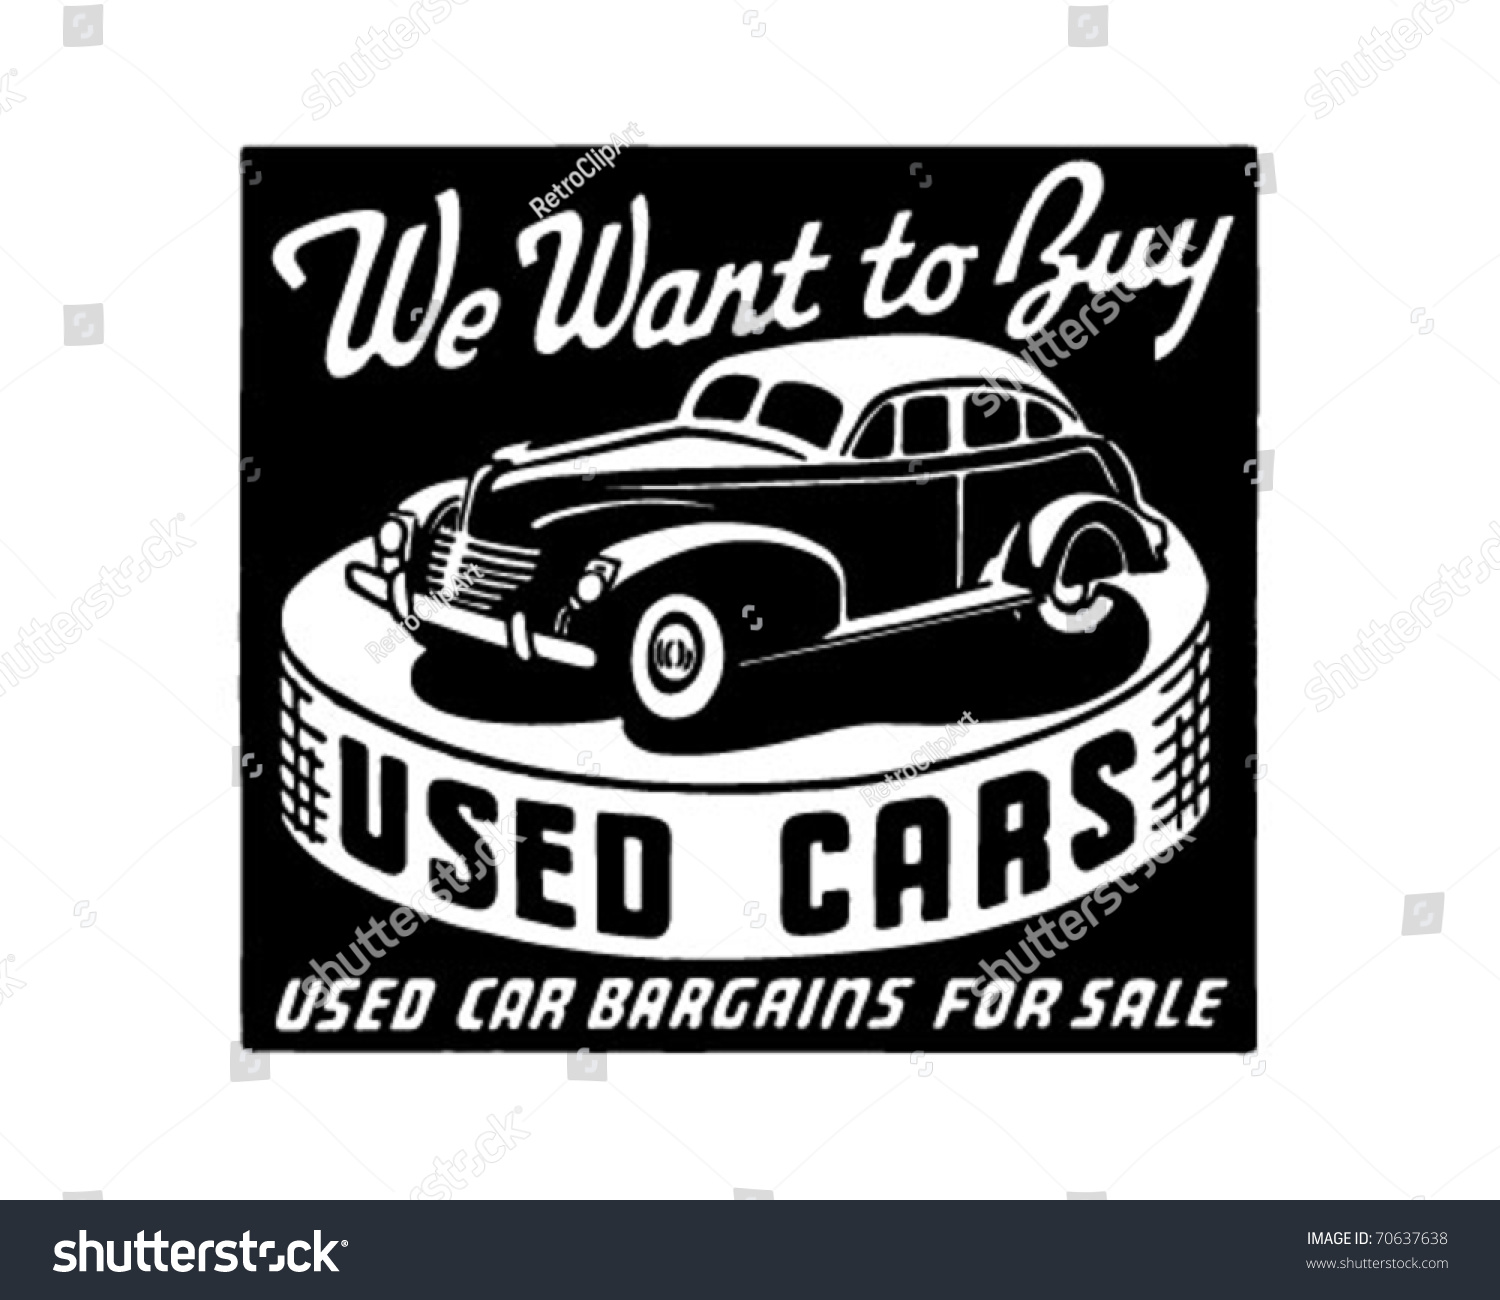 We Want Buy Used Cars Retro Stock Vector 70637638 - Shutterstock